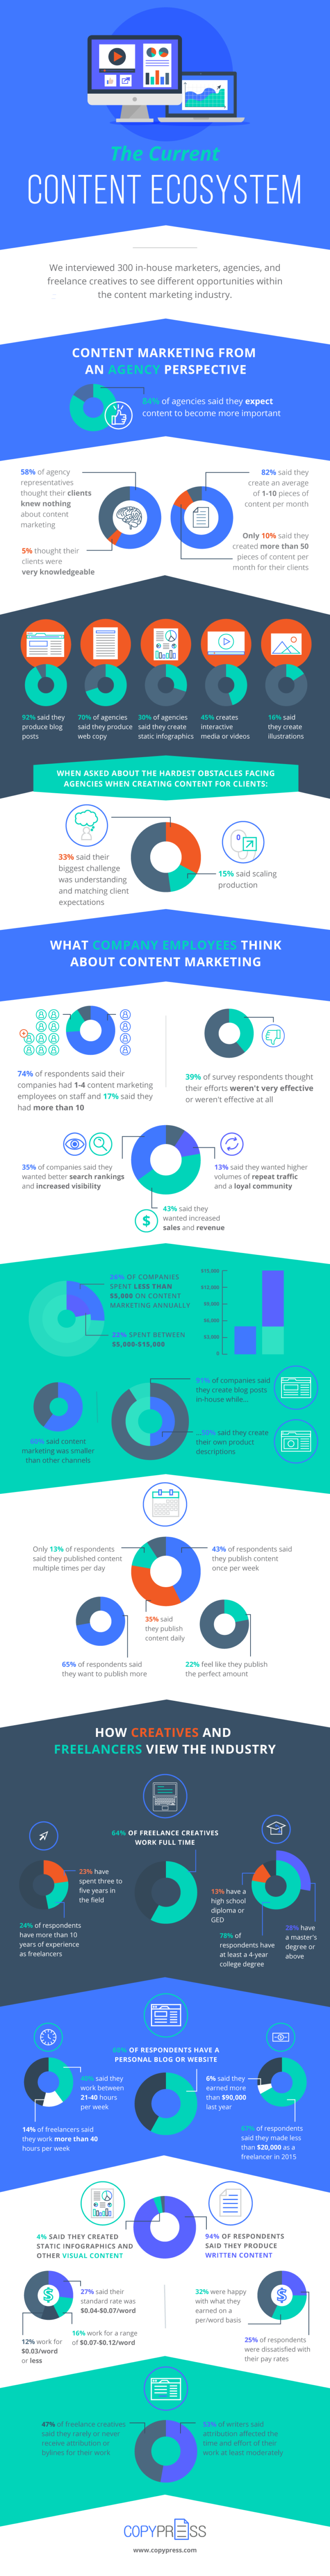 Infographic: The Current Content Ecosystem